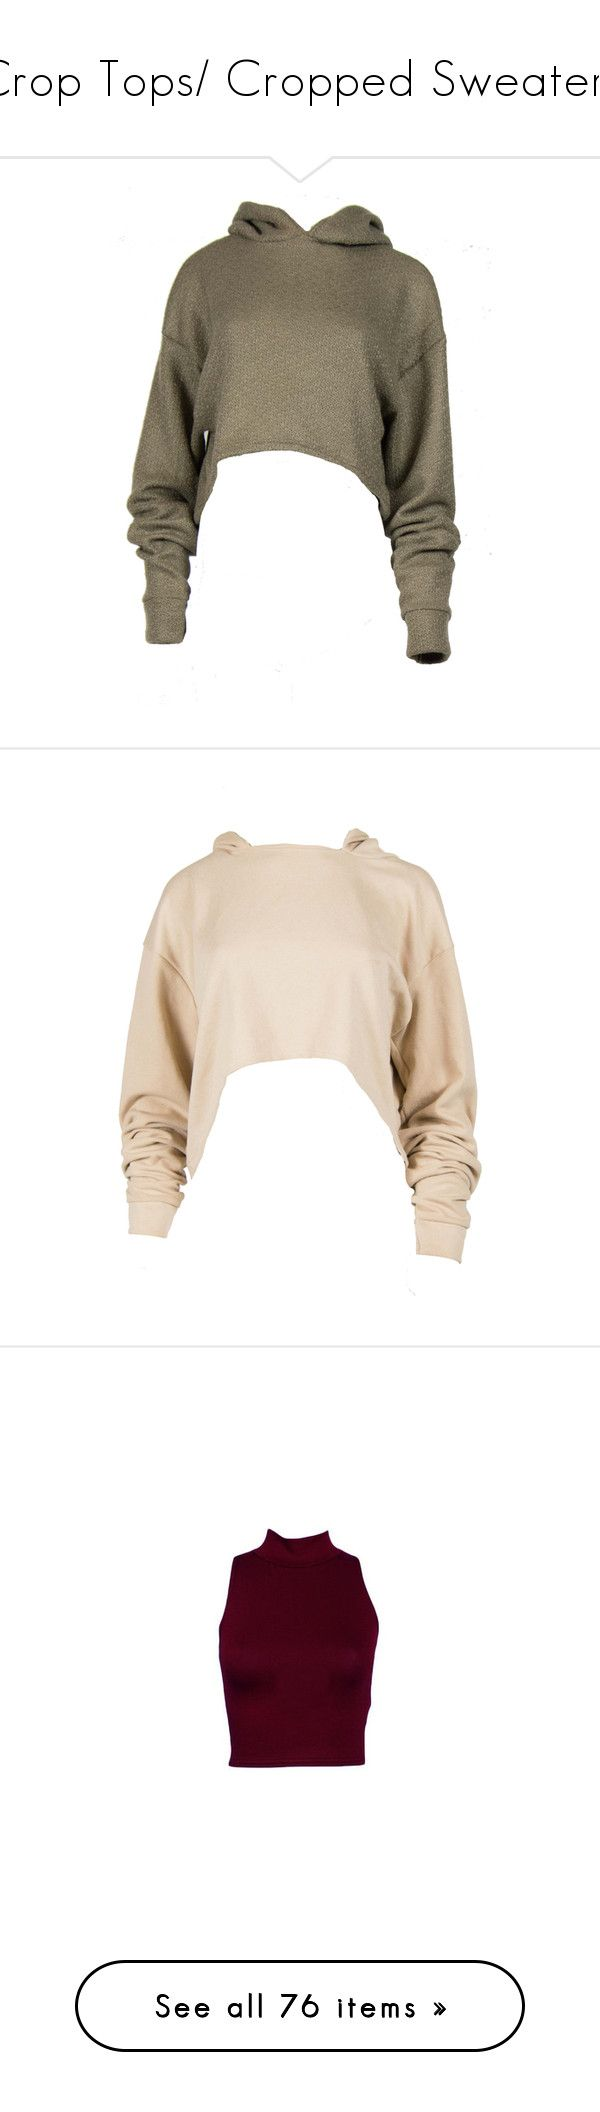 """""""Crop Tops/ Cropped Sweaters"""" by miabell22004 on Polyvore featuring tops, croptops, Hoodies, croppedsweaters, hoodies, shirts, sweaters, crop top, brown crop top and sweatshirt hoodies"""